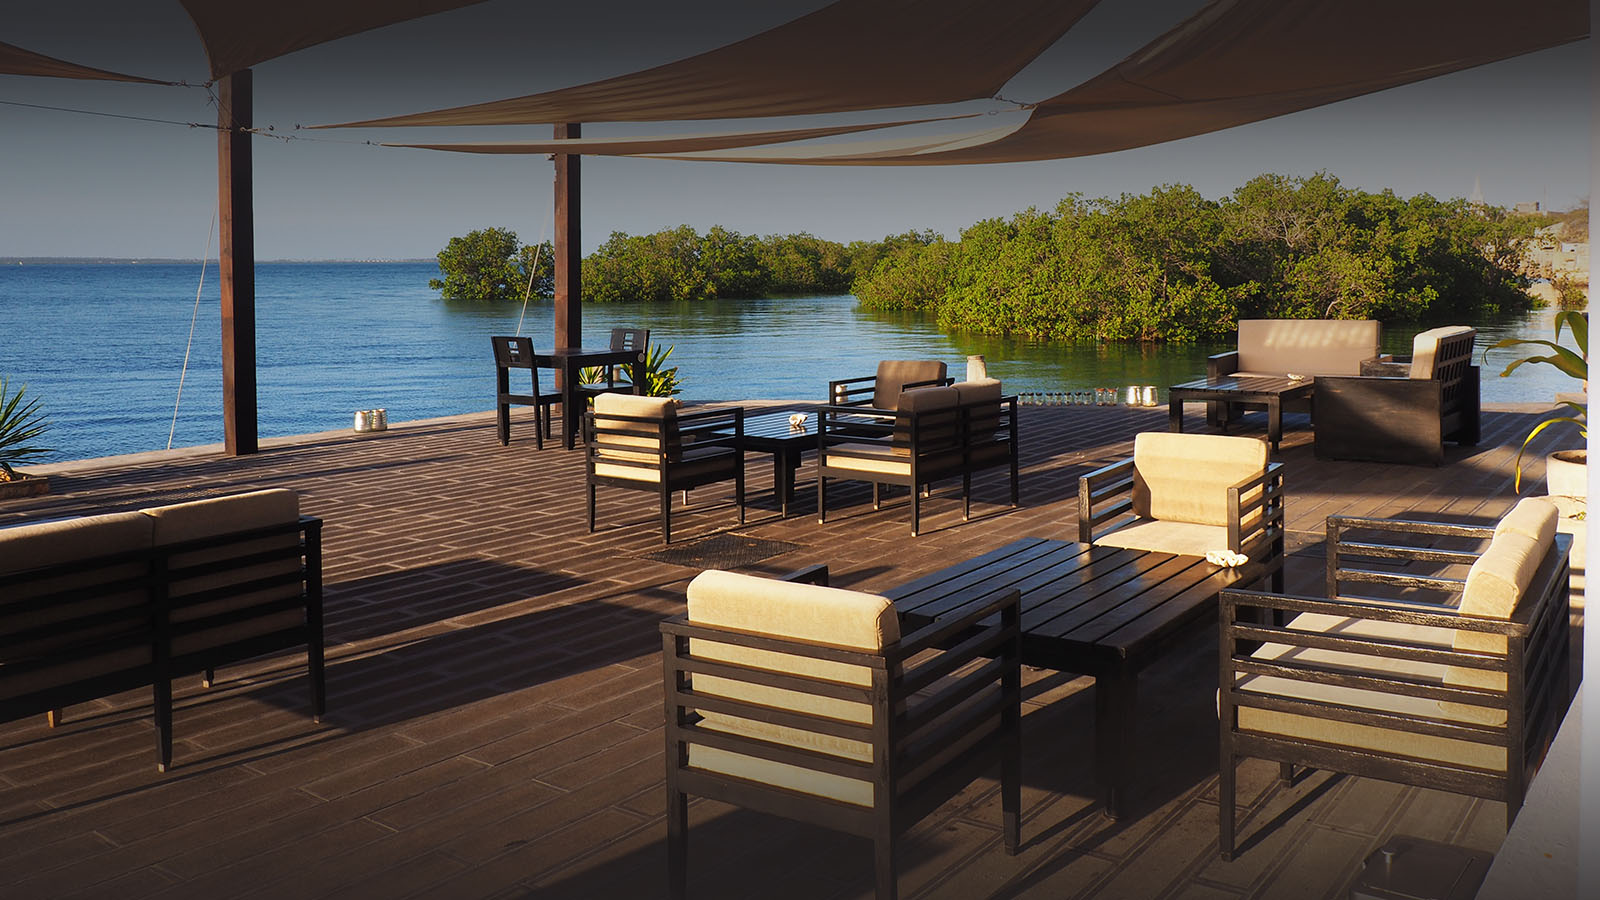 feitoria boutique hotel ilha-de-mozambique-lodges-zambia-in-style-luxurious-gorgeous-location-deck